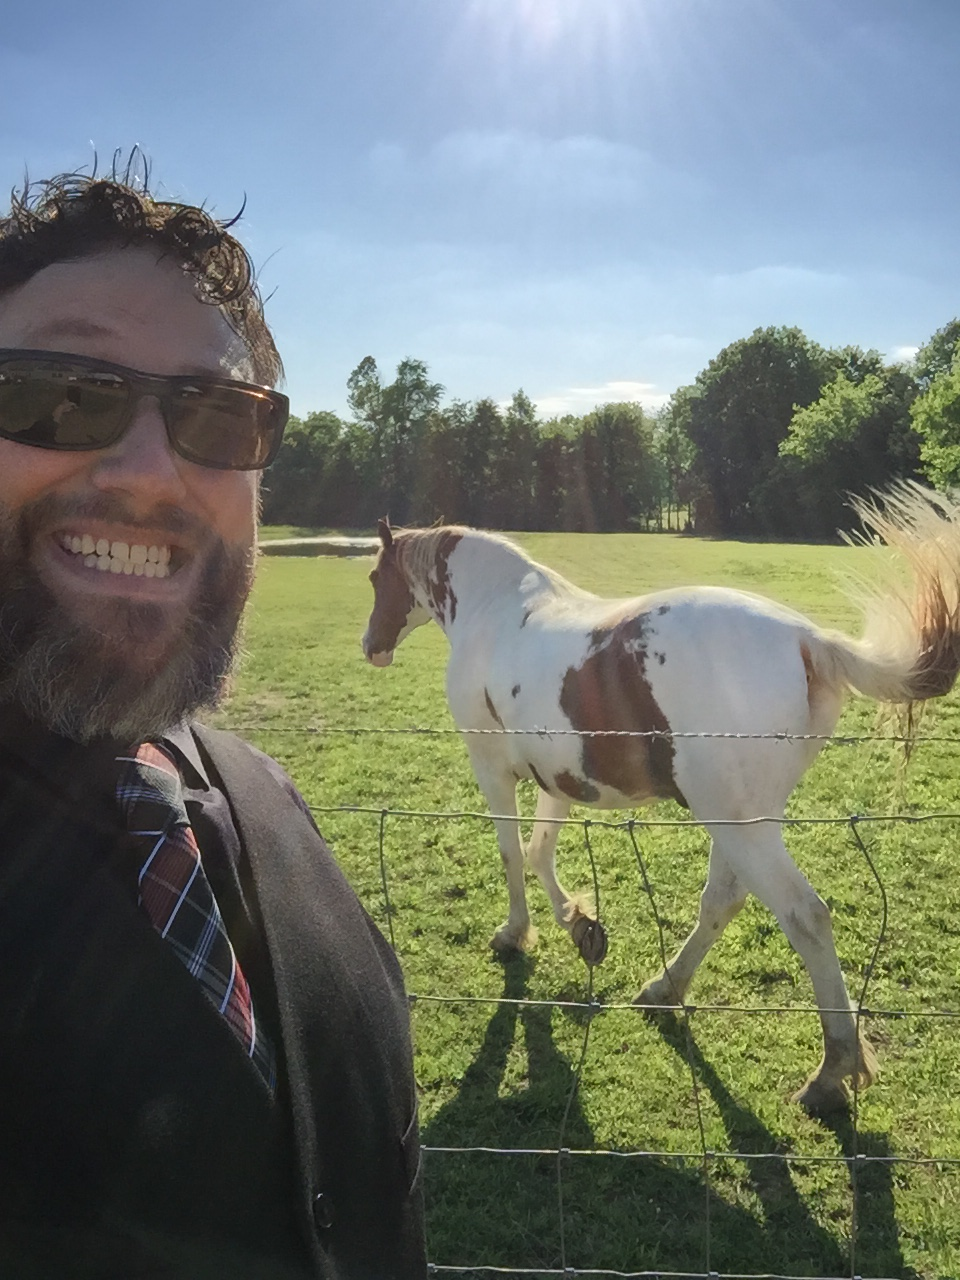 Brad Ford hanging out with Emily's uncle's horses.